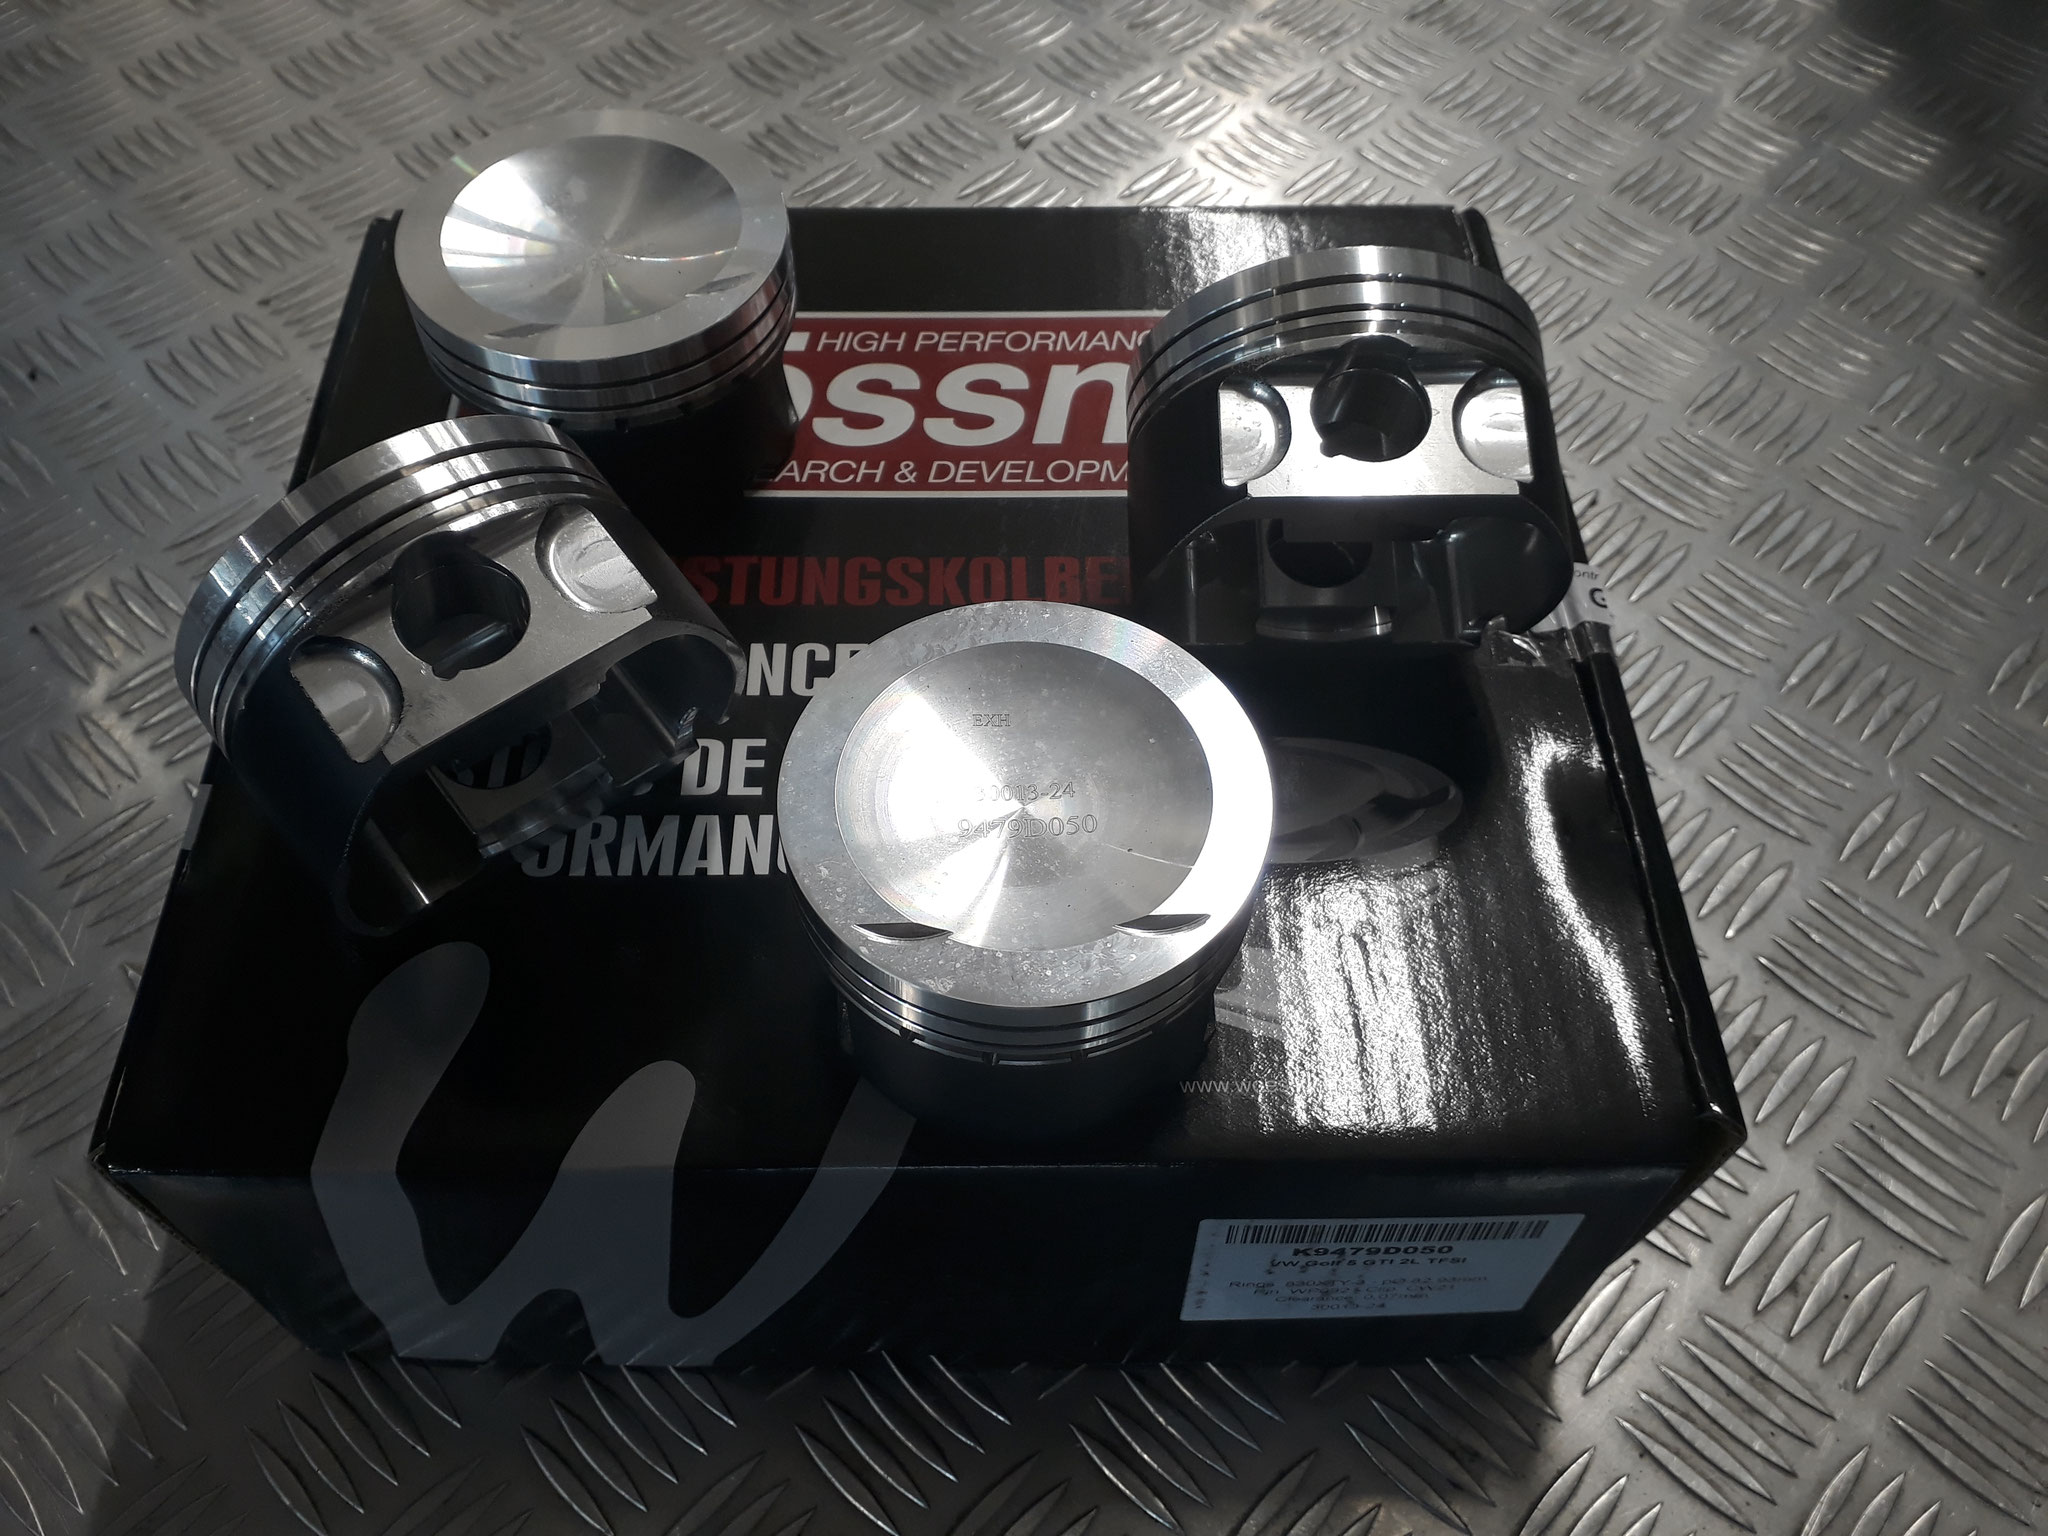 TFSI Wossner forged pistons